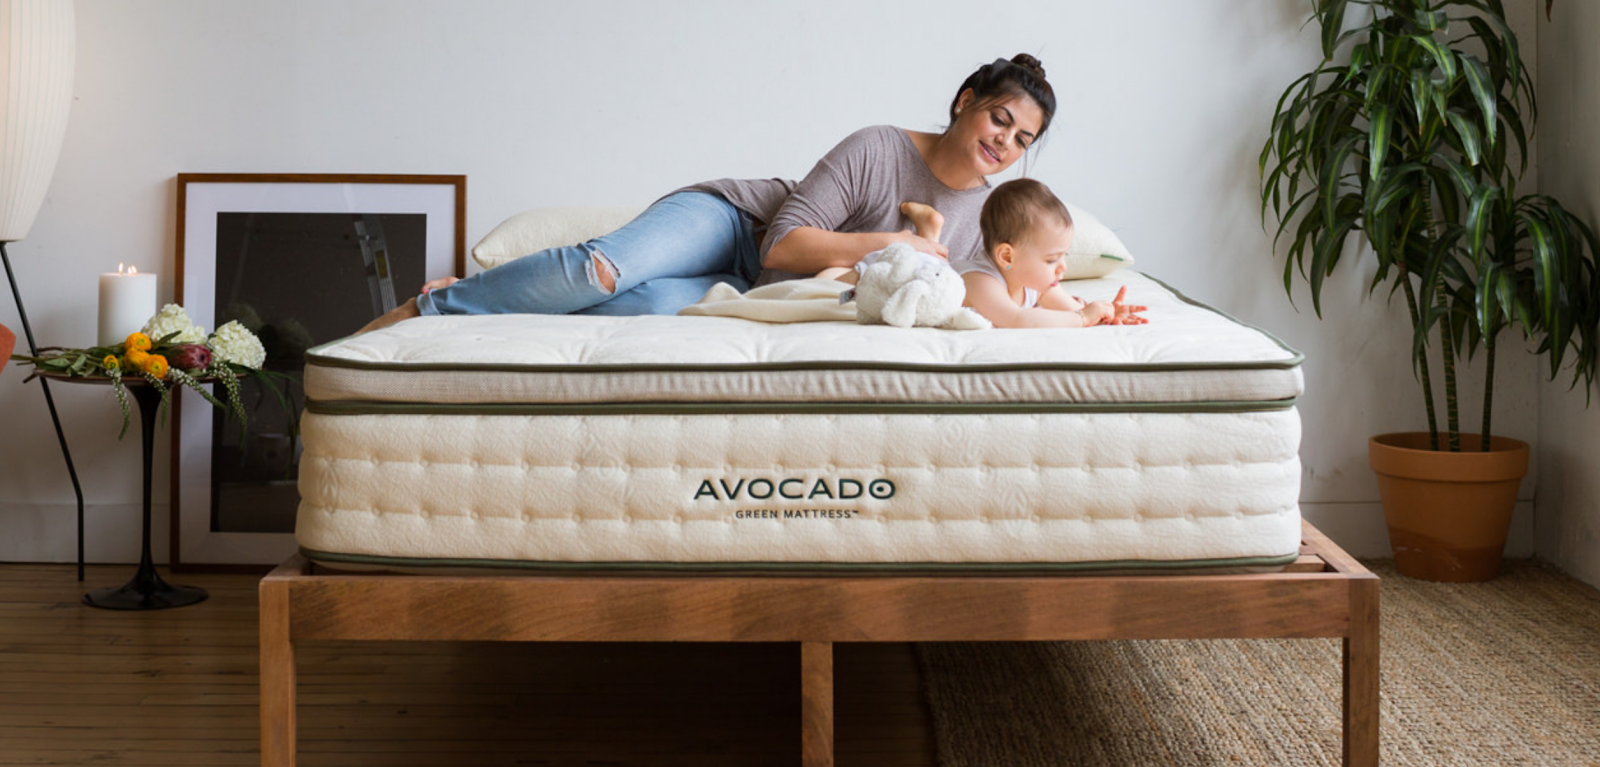 Avocado Green Mattress - 100% certified organic materials